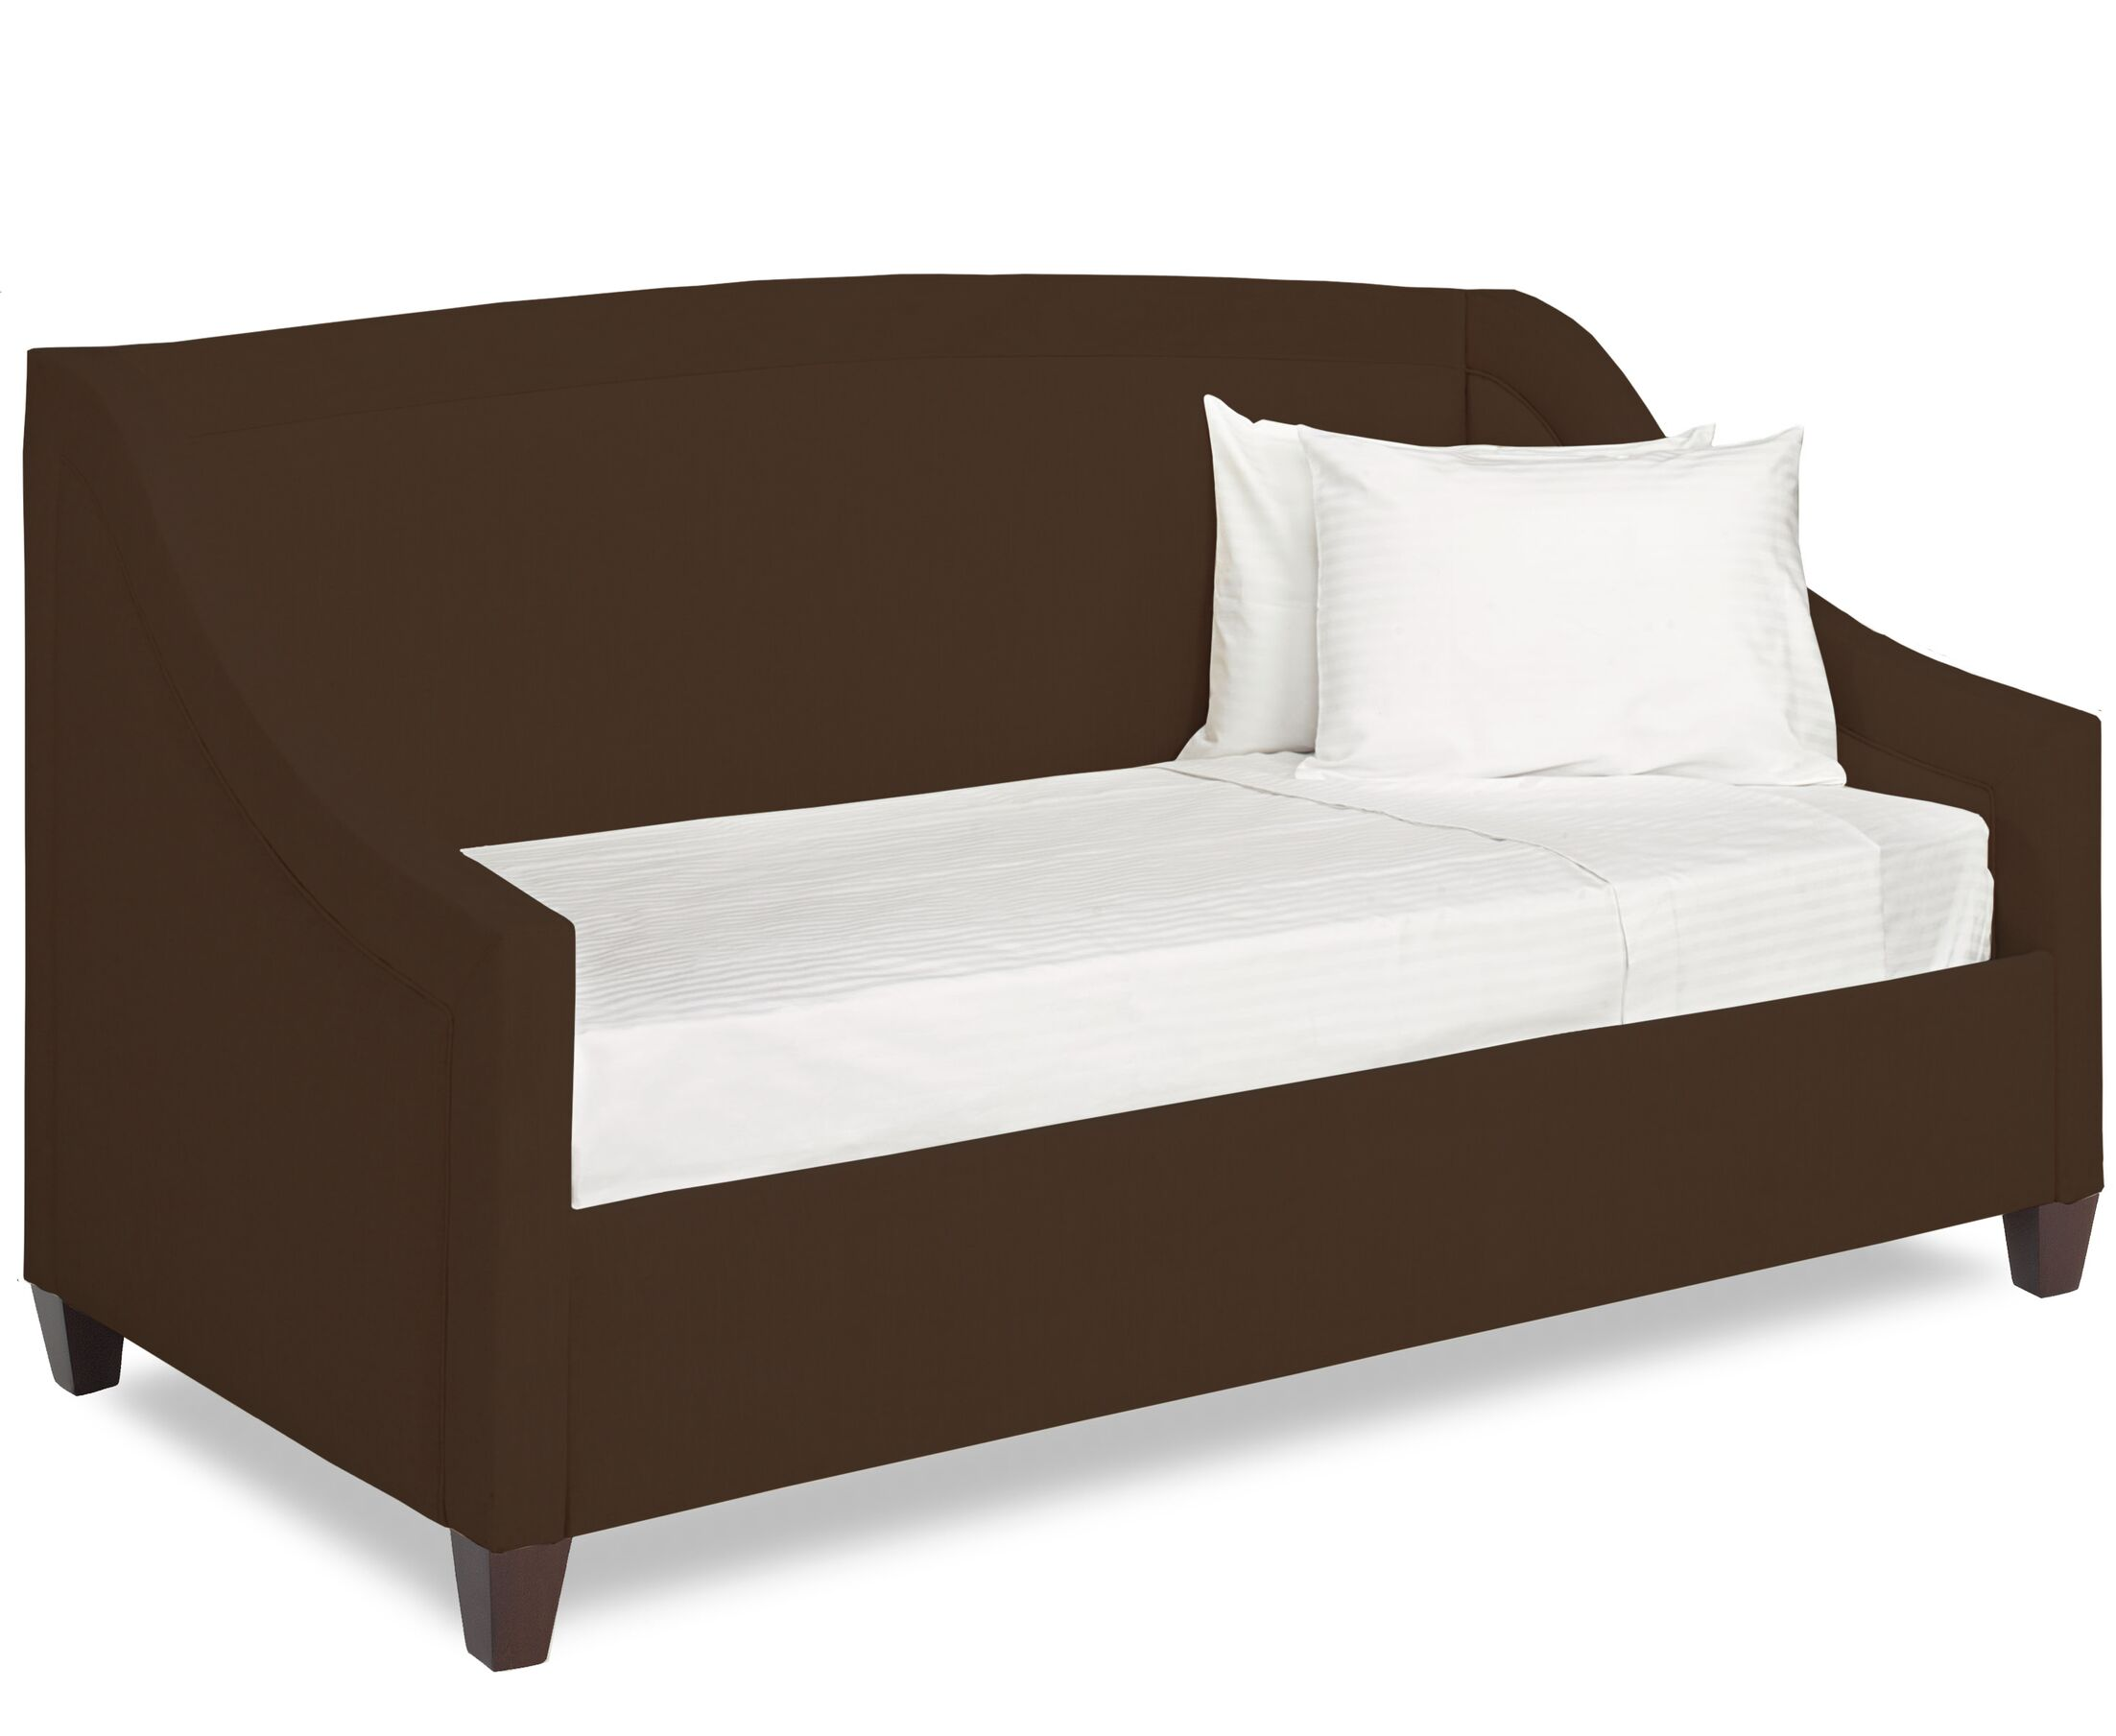 Dreamtime Daybed with Mattress Color: Chocolate, Size: Twin XL